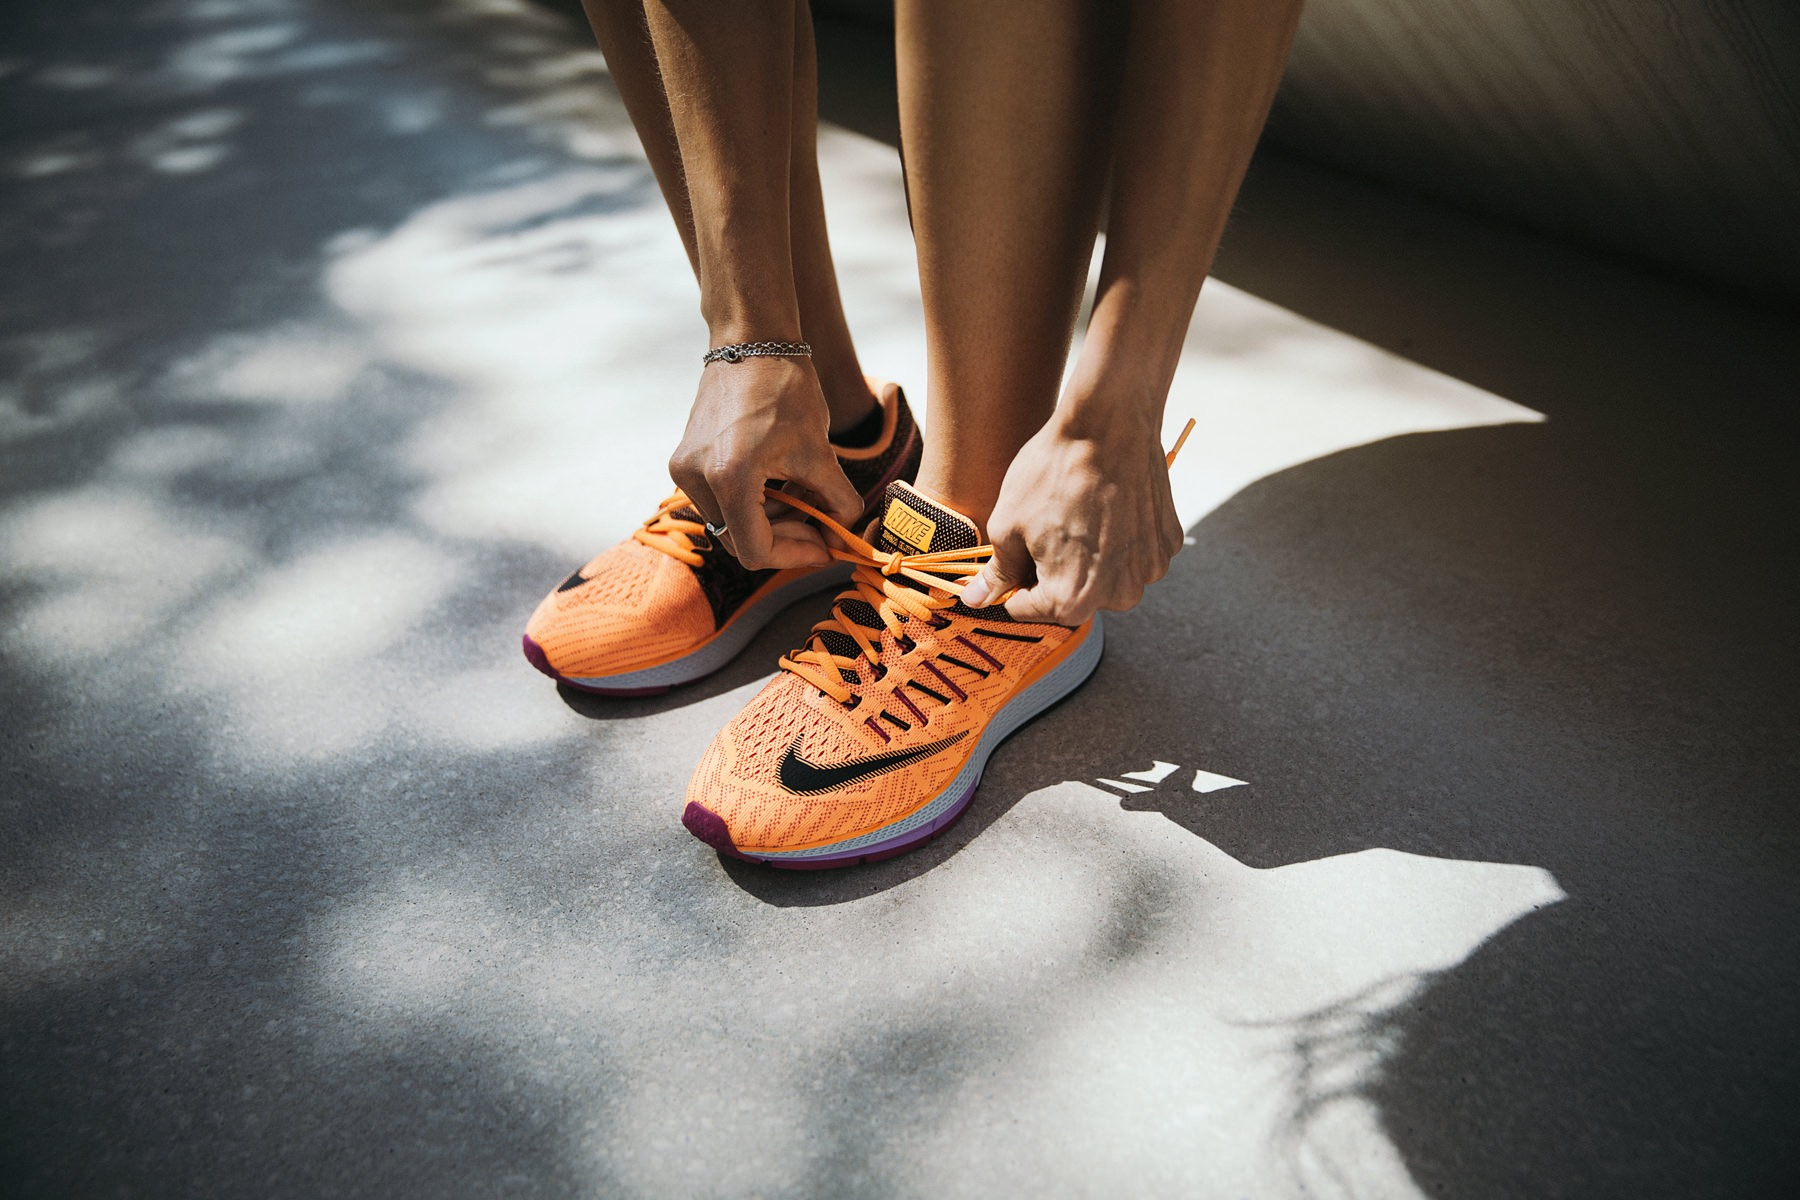 ­photo, photos, photography, photographer, photographers, woman, women, legs, nike, shoes, tennis shoes, athletic, athletic wear, sportswear, shadow, daylight, natural light, feet